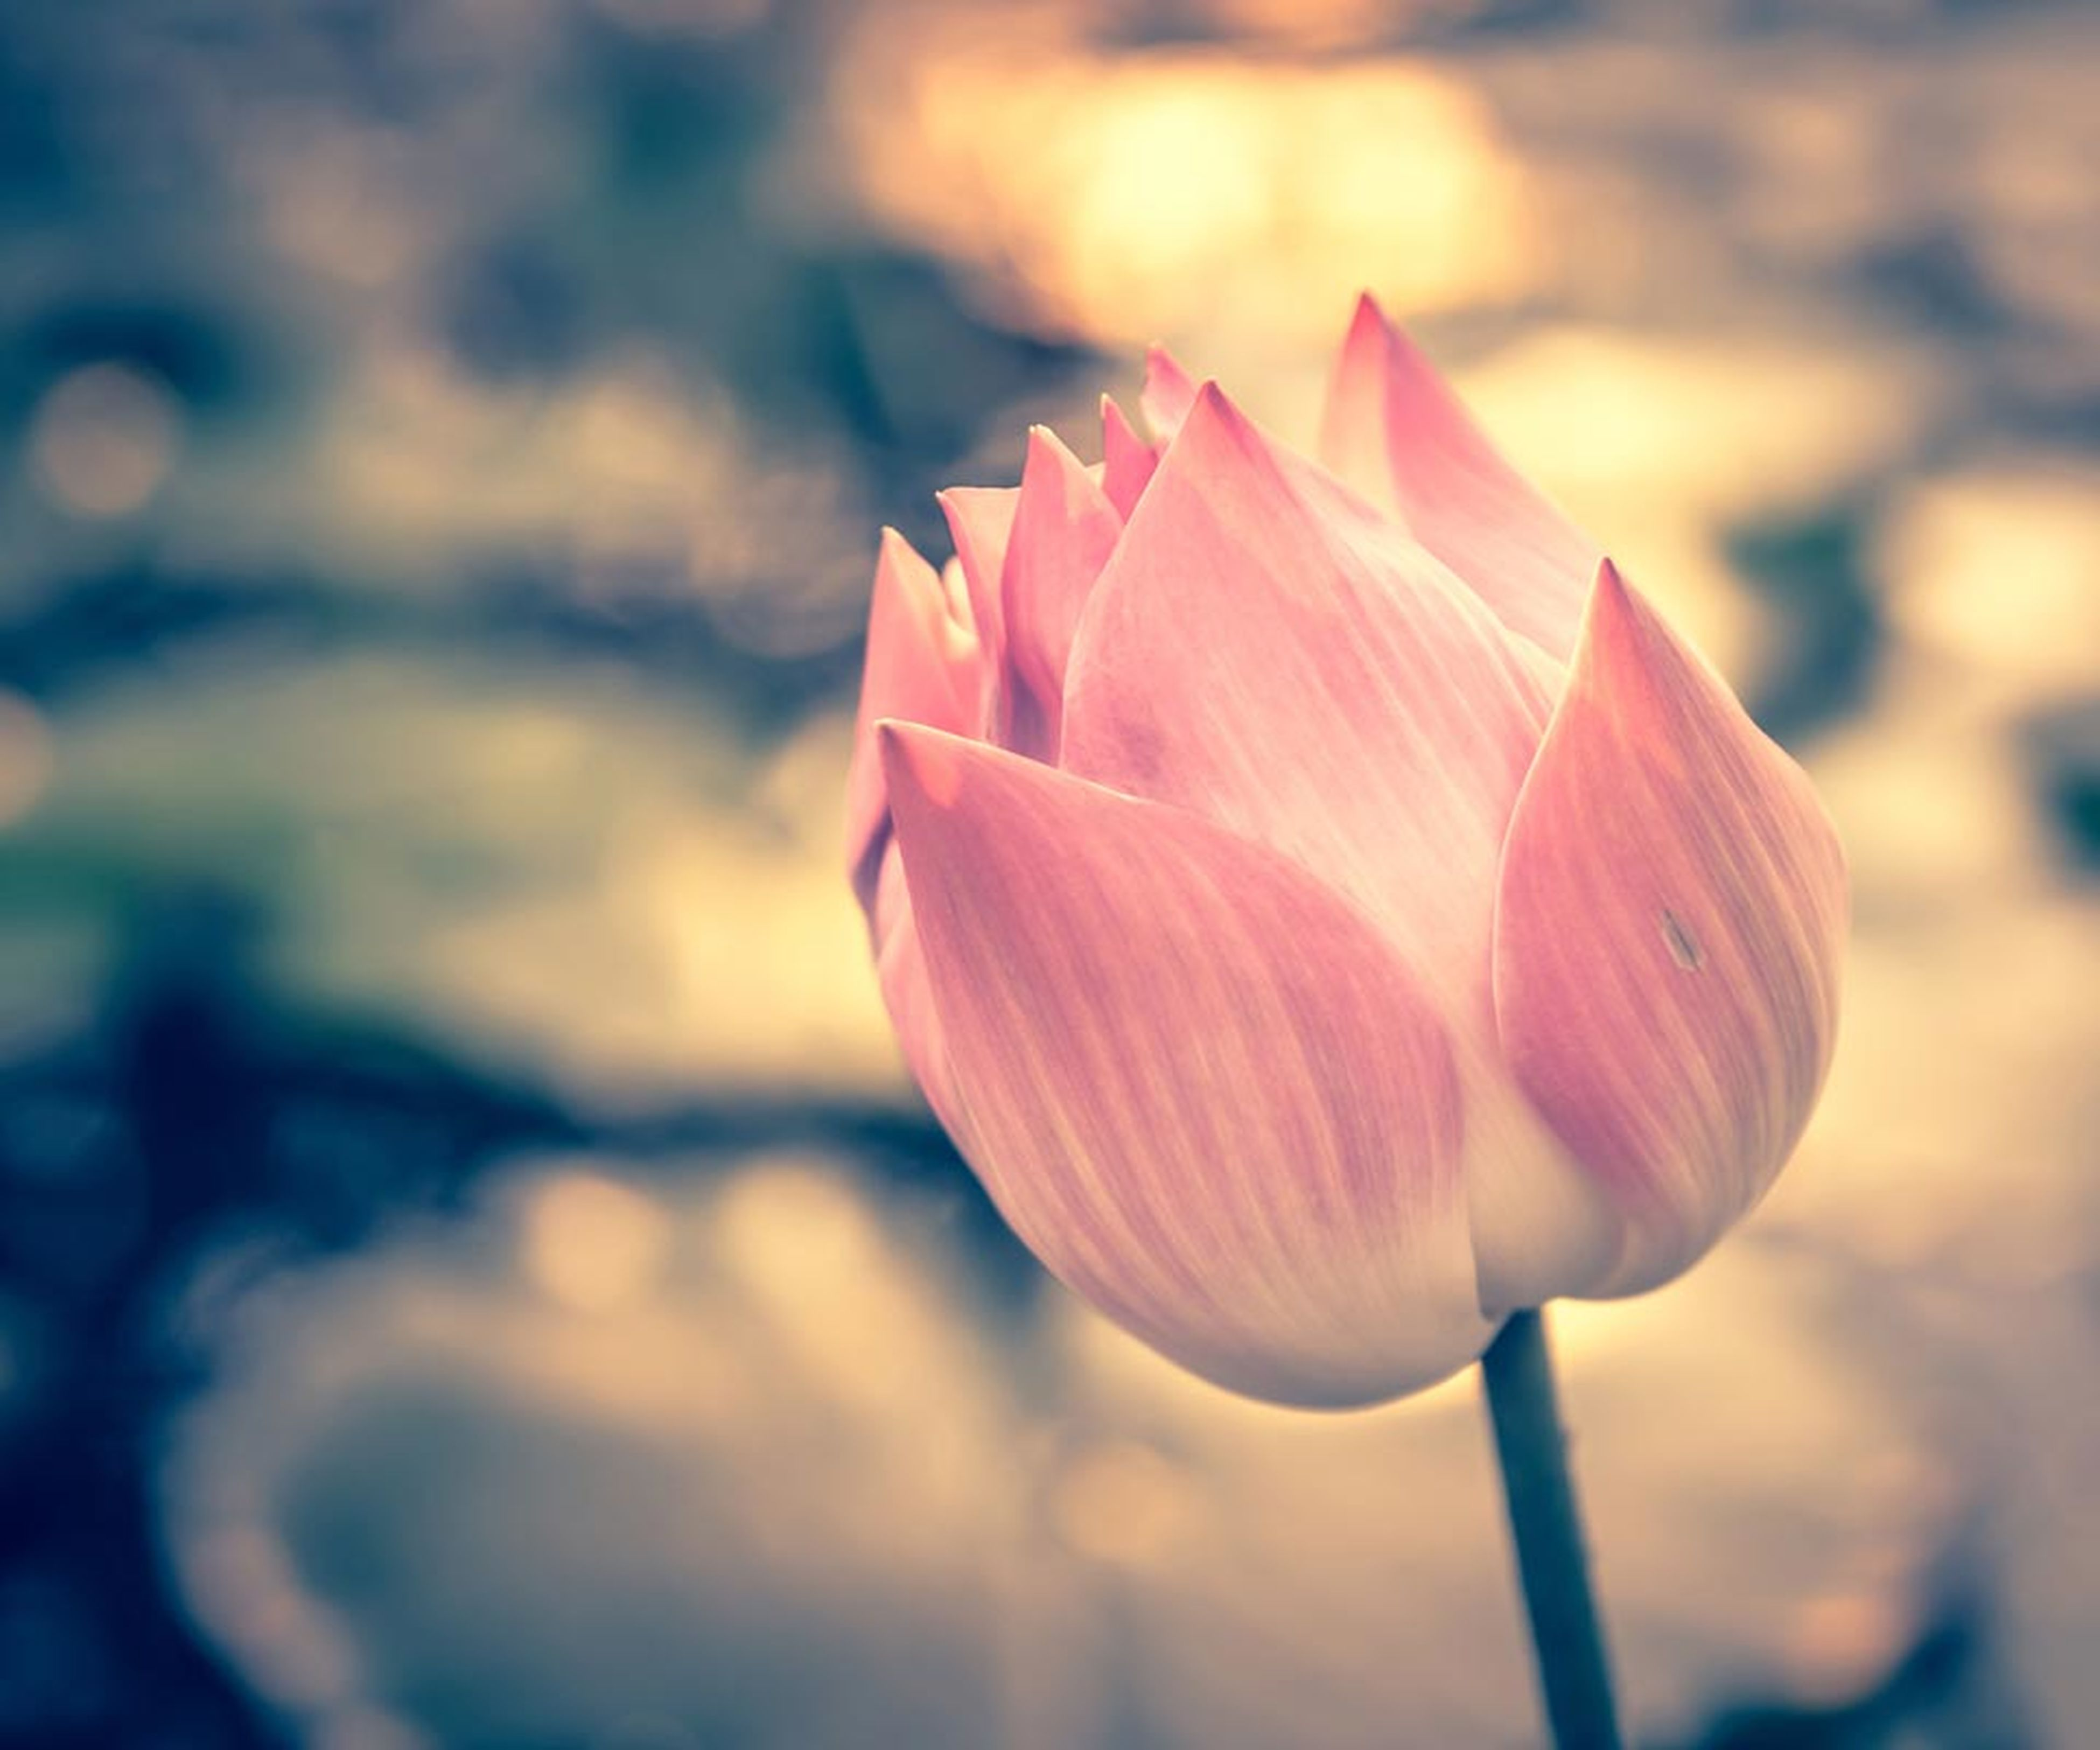 flower, petal, flower head, freshness, fragility, beauty in nature, focus on foreground, close-up, growth, nature, single flower, pink color, stem, tulip, blooming, plant, outdoors, no people, in bloom, bud